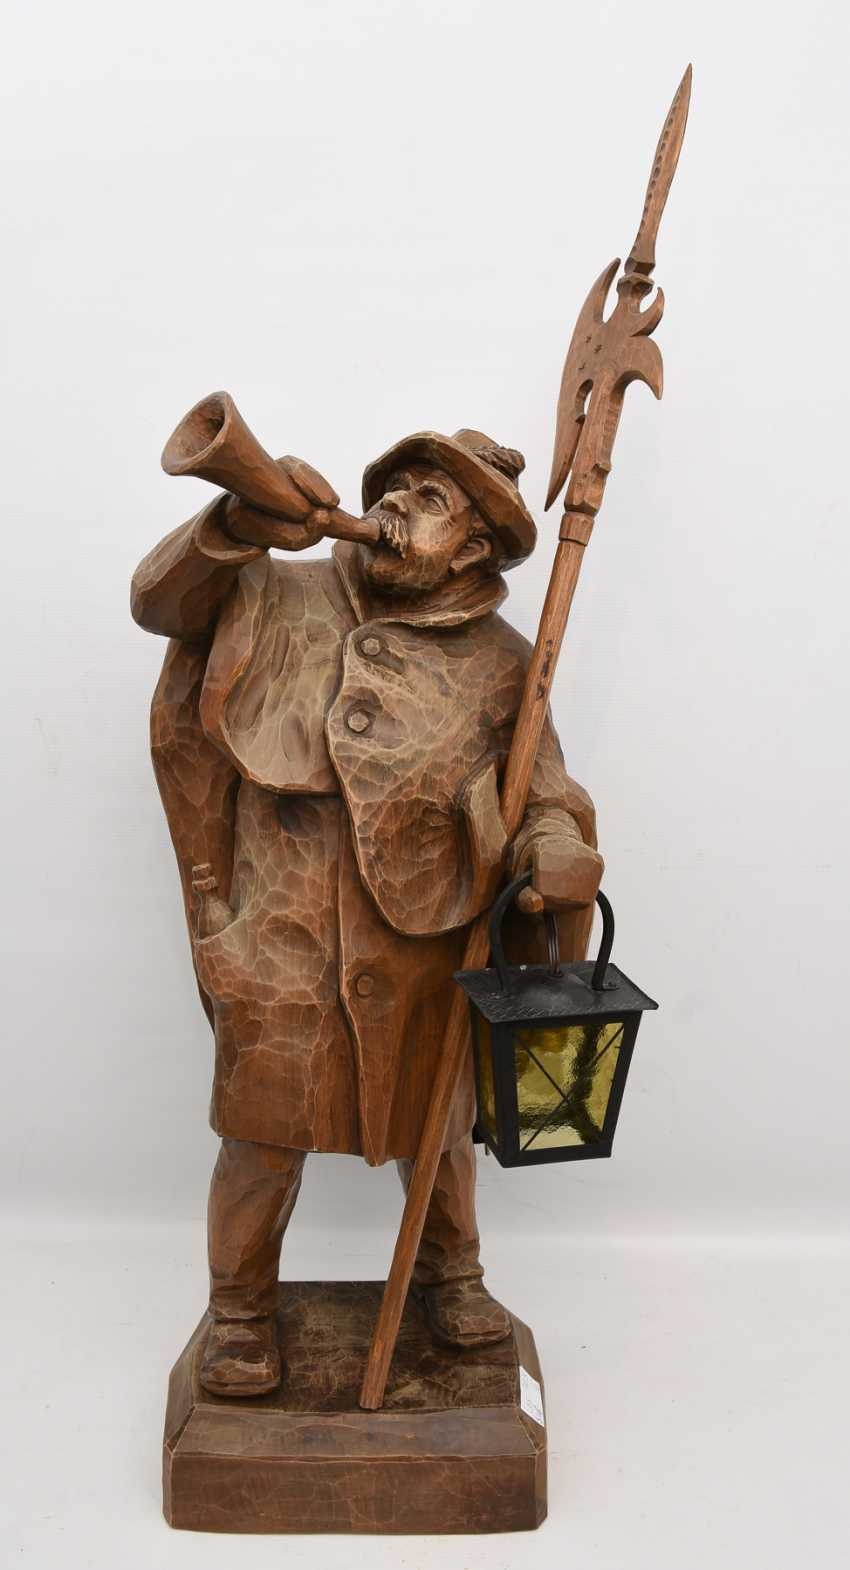 """Night watchman WITH LANTERN"", beschnitztes wood/glass, Germany 20. Century - photo 1"